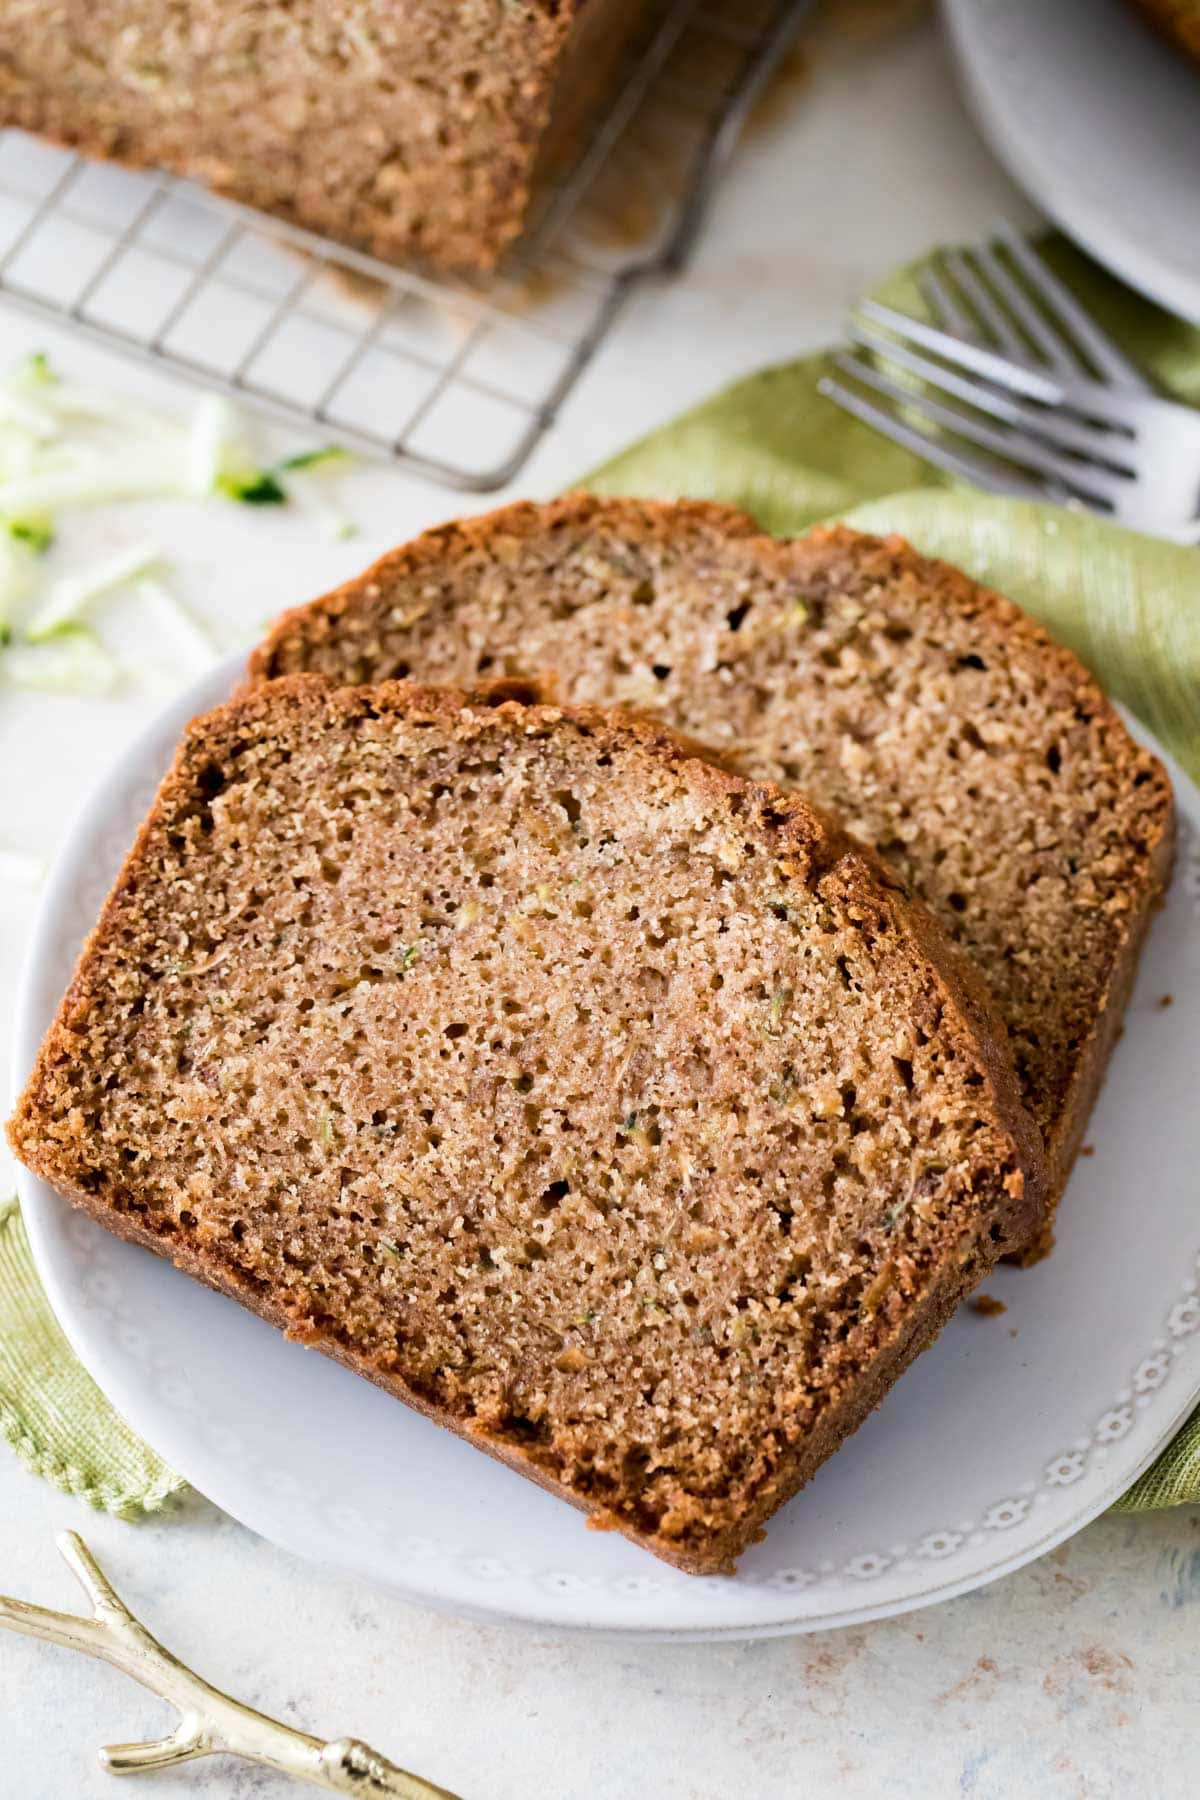 two slices of zucchini bread on white plate